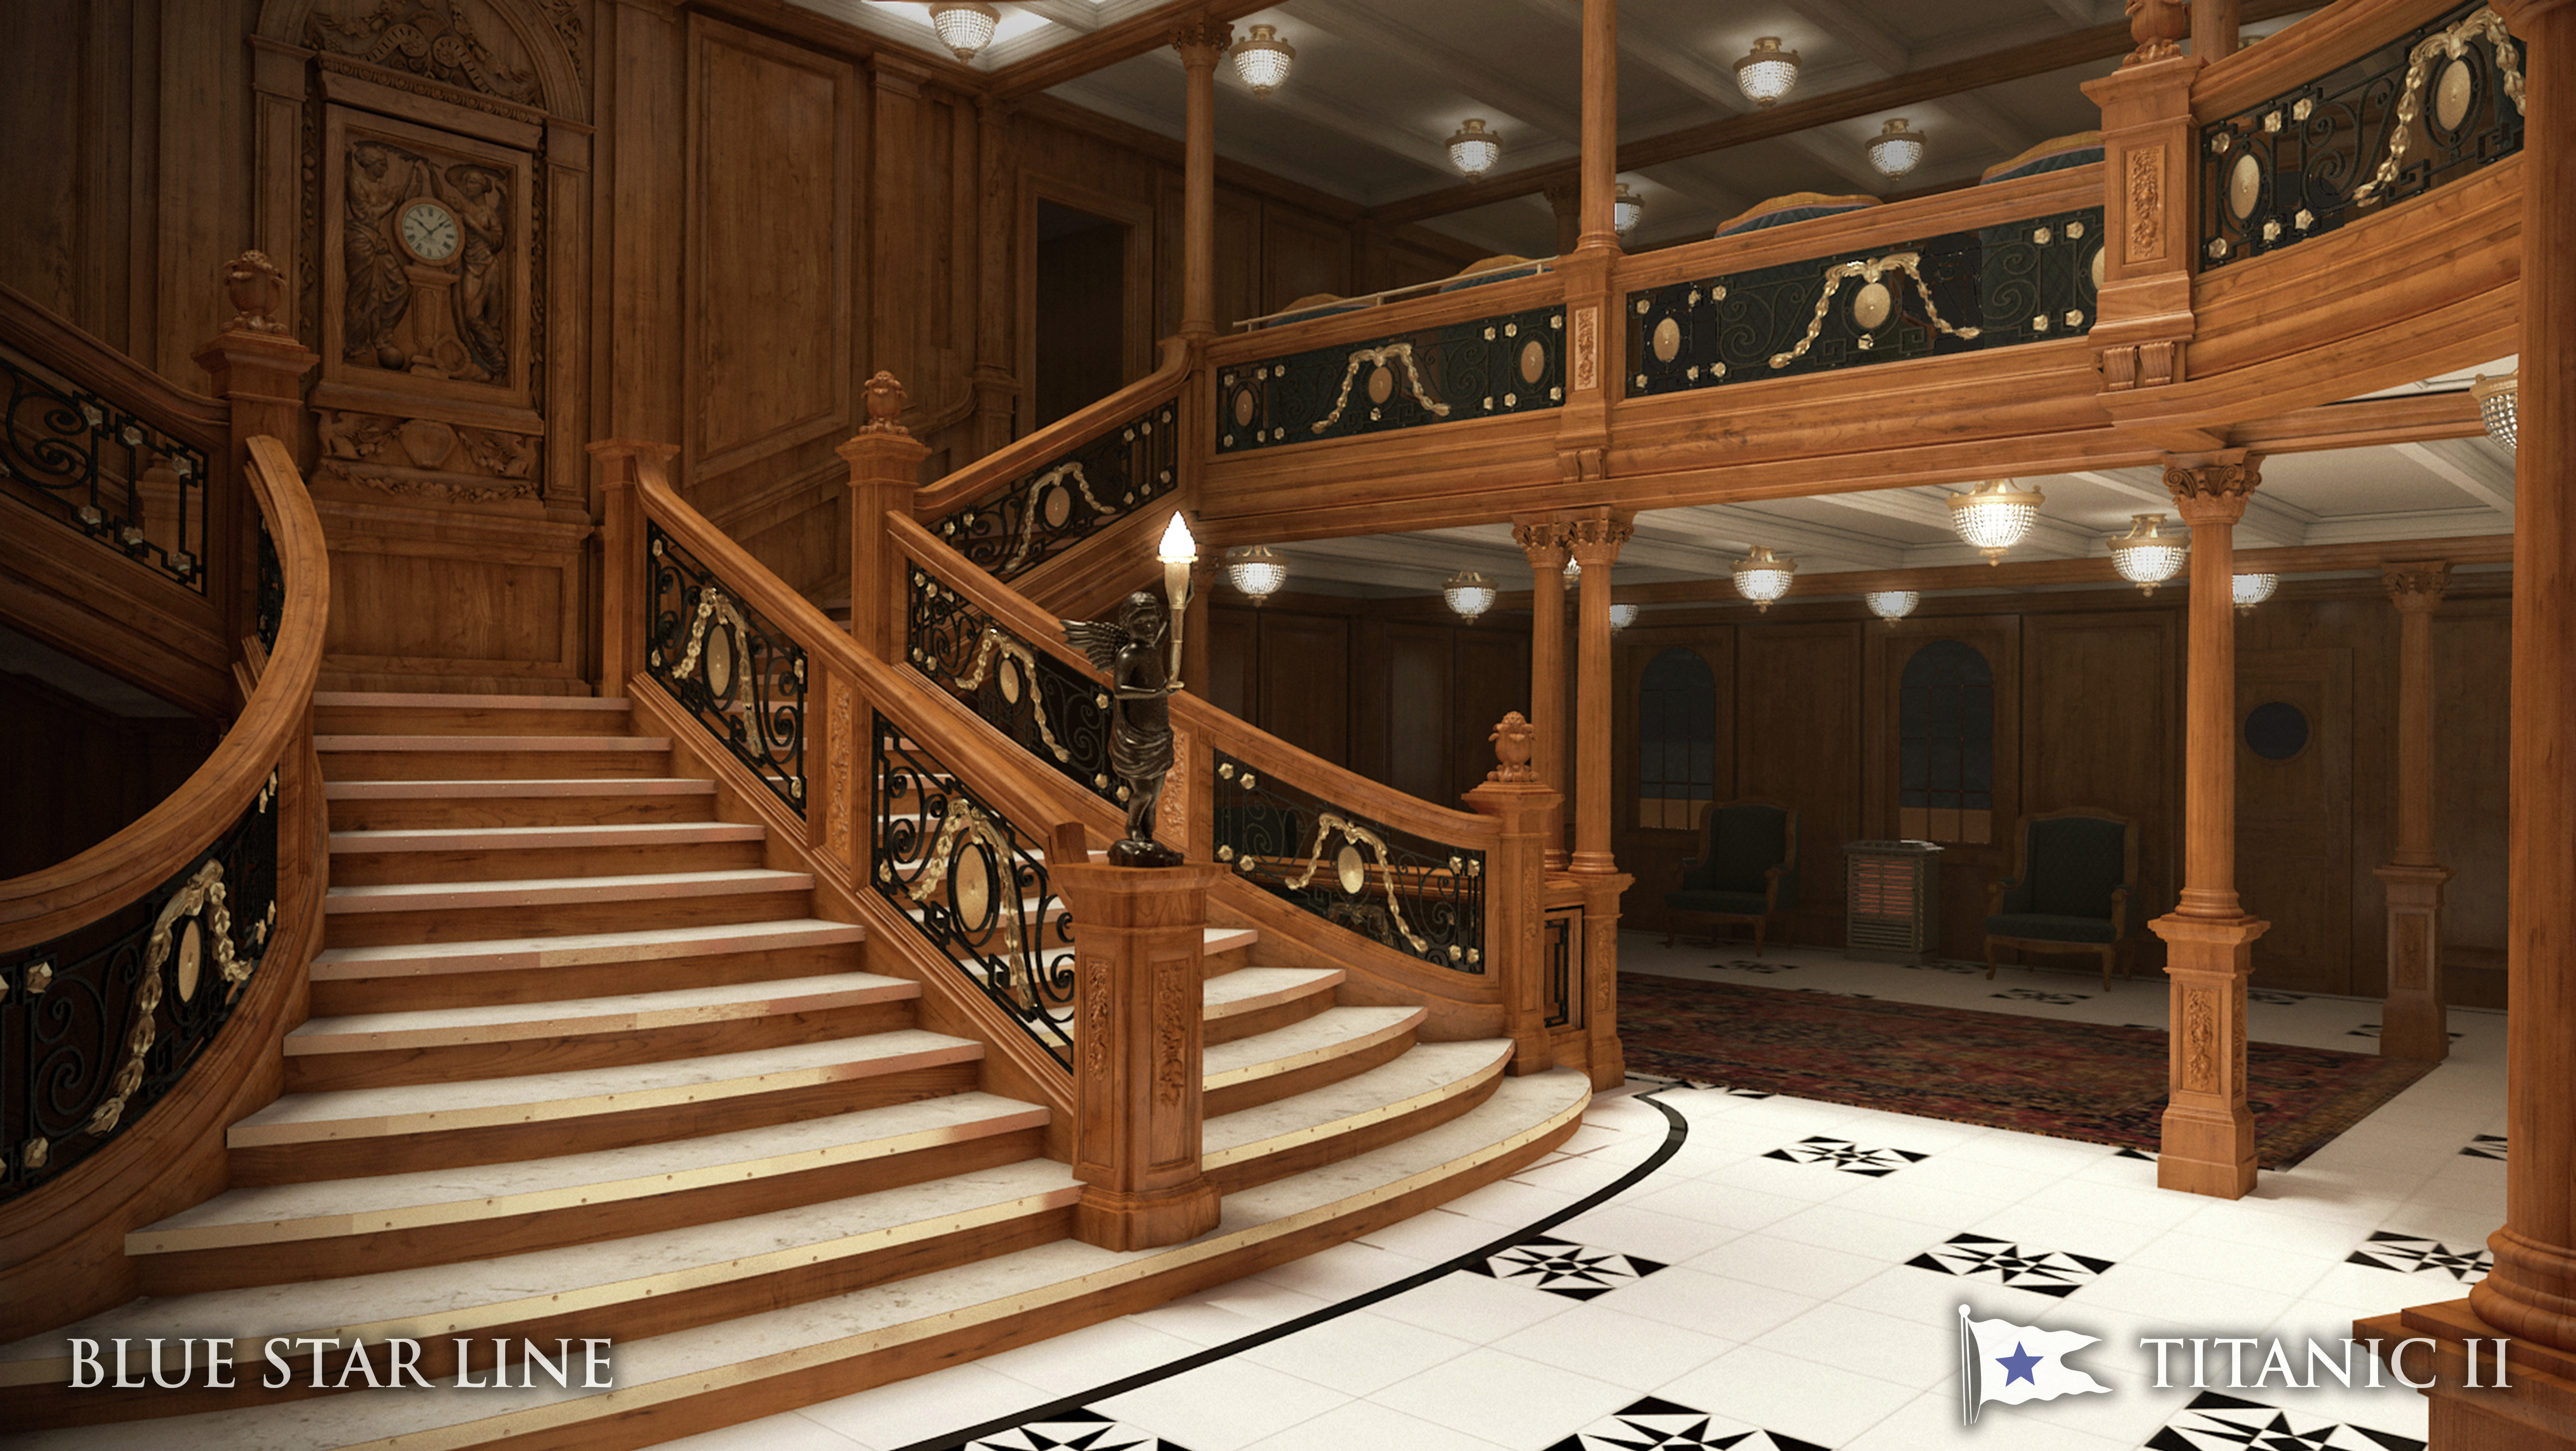 In this rendering provided by Blue Star Line, the grand staircase on the Titanic II is shown. The replica ship, which Australian billionaire Clive Palmer is planning to build in China, is scheduled to sail in 2016